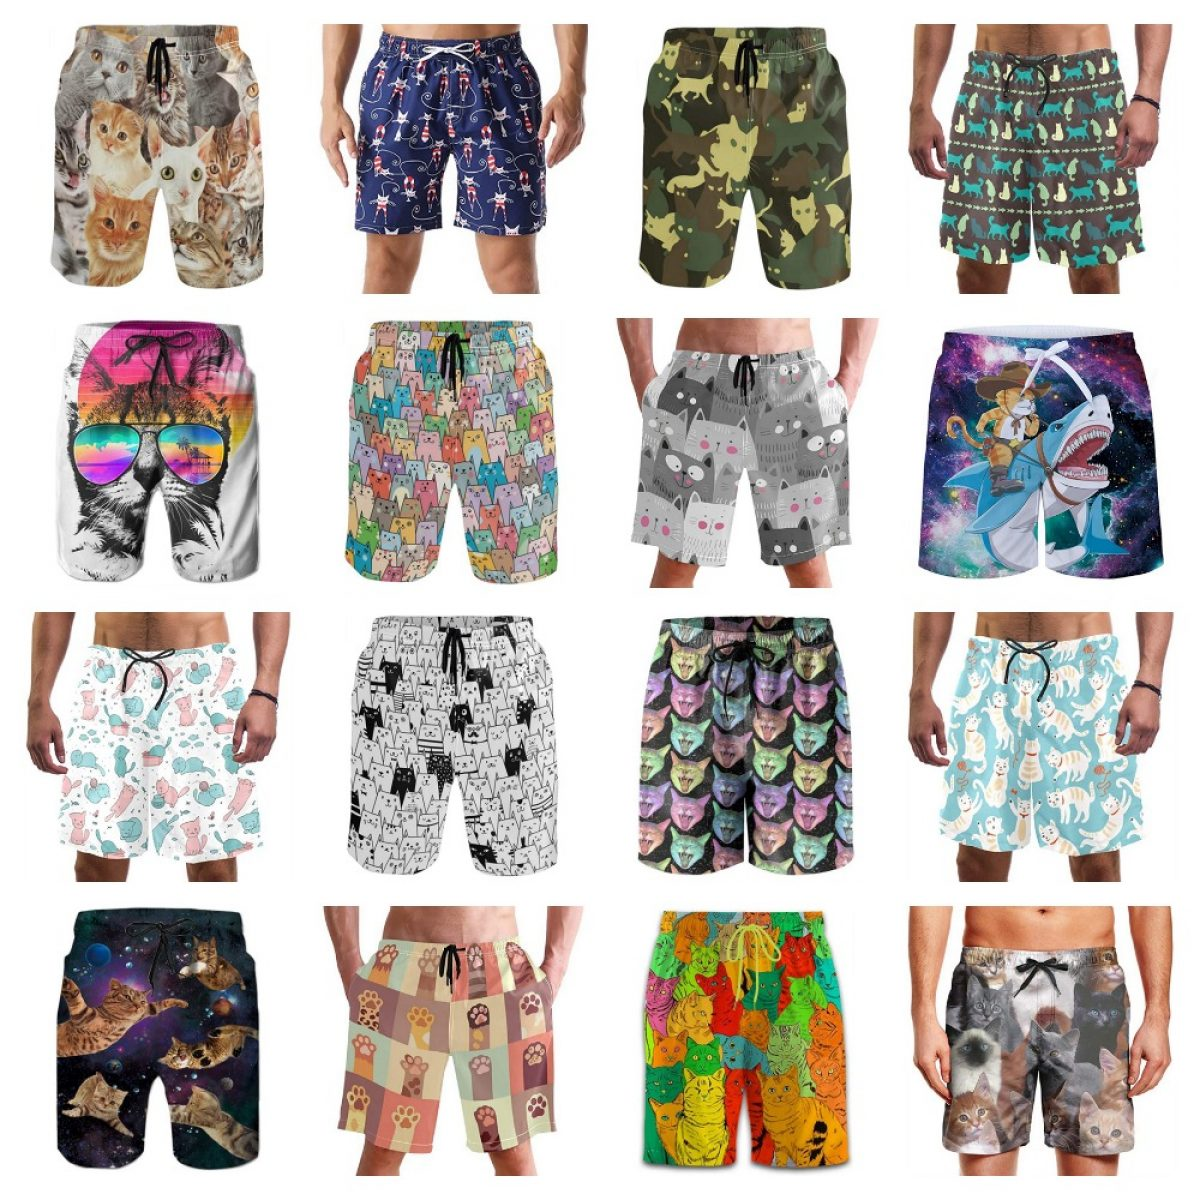 Whimsical Christmas Swim Trunks Quick Dry Beach Board Home Water Sports Mens Shorts